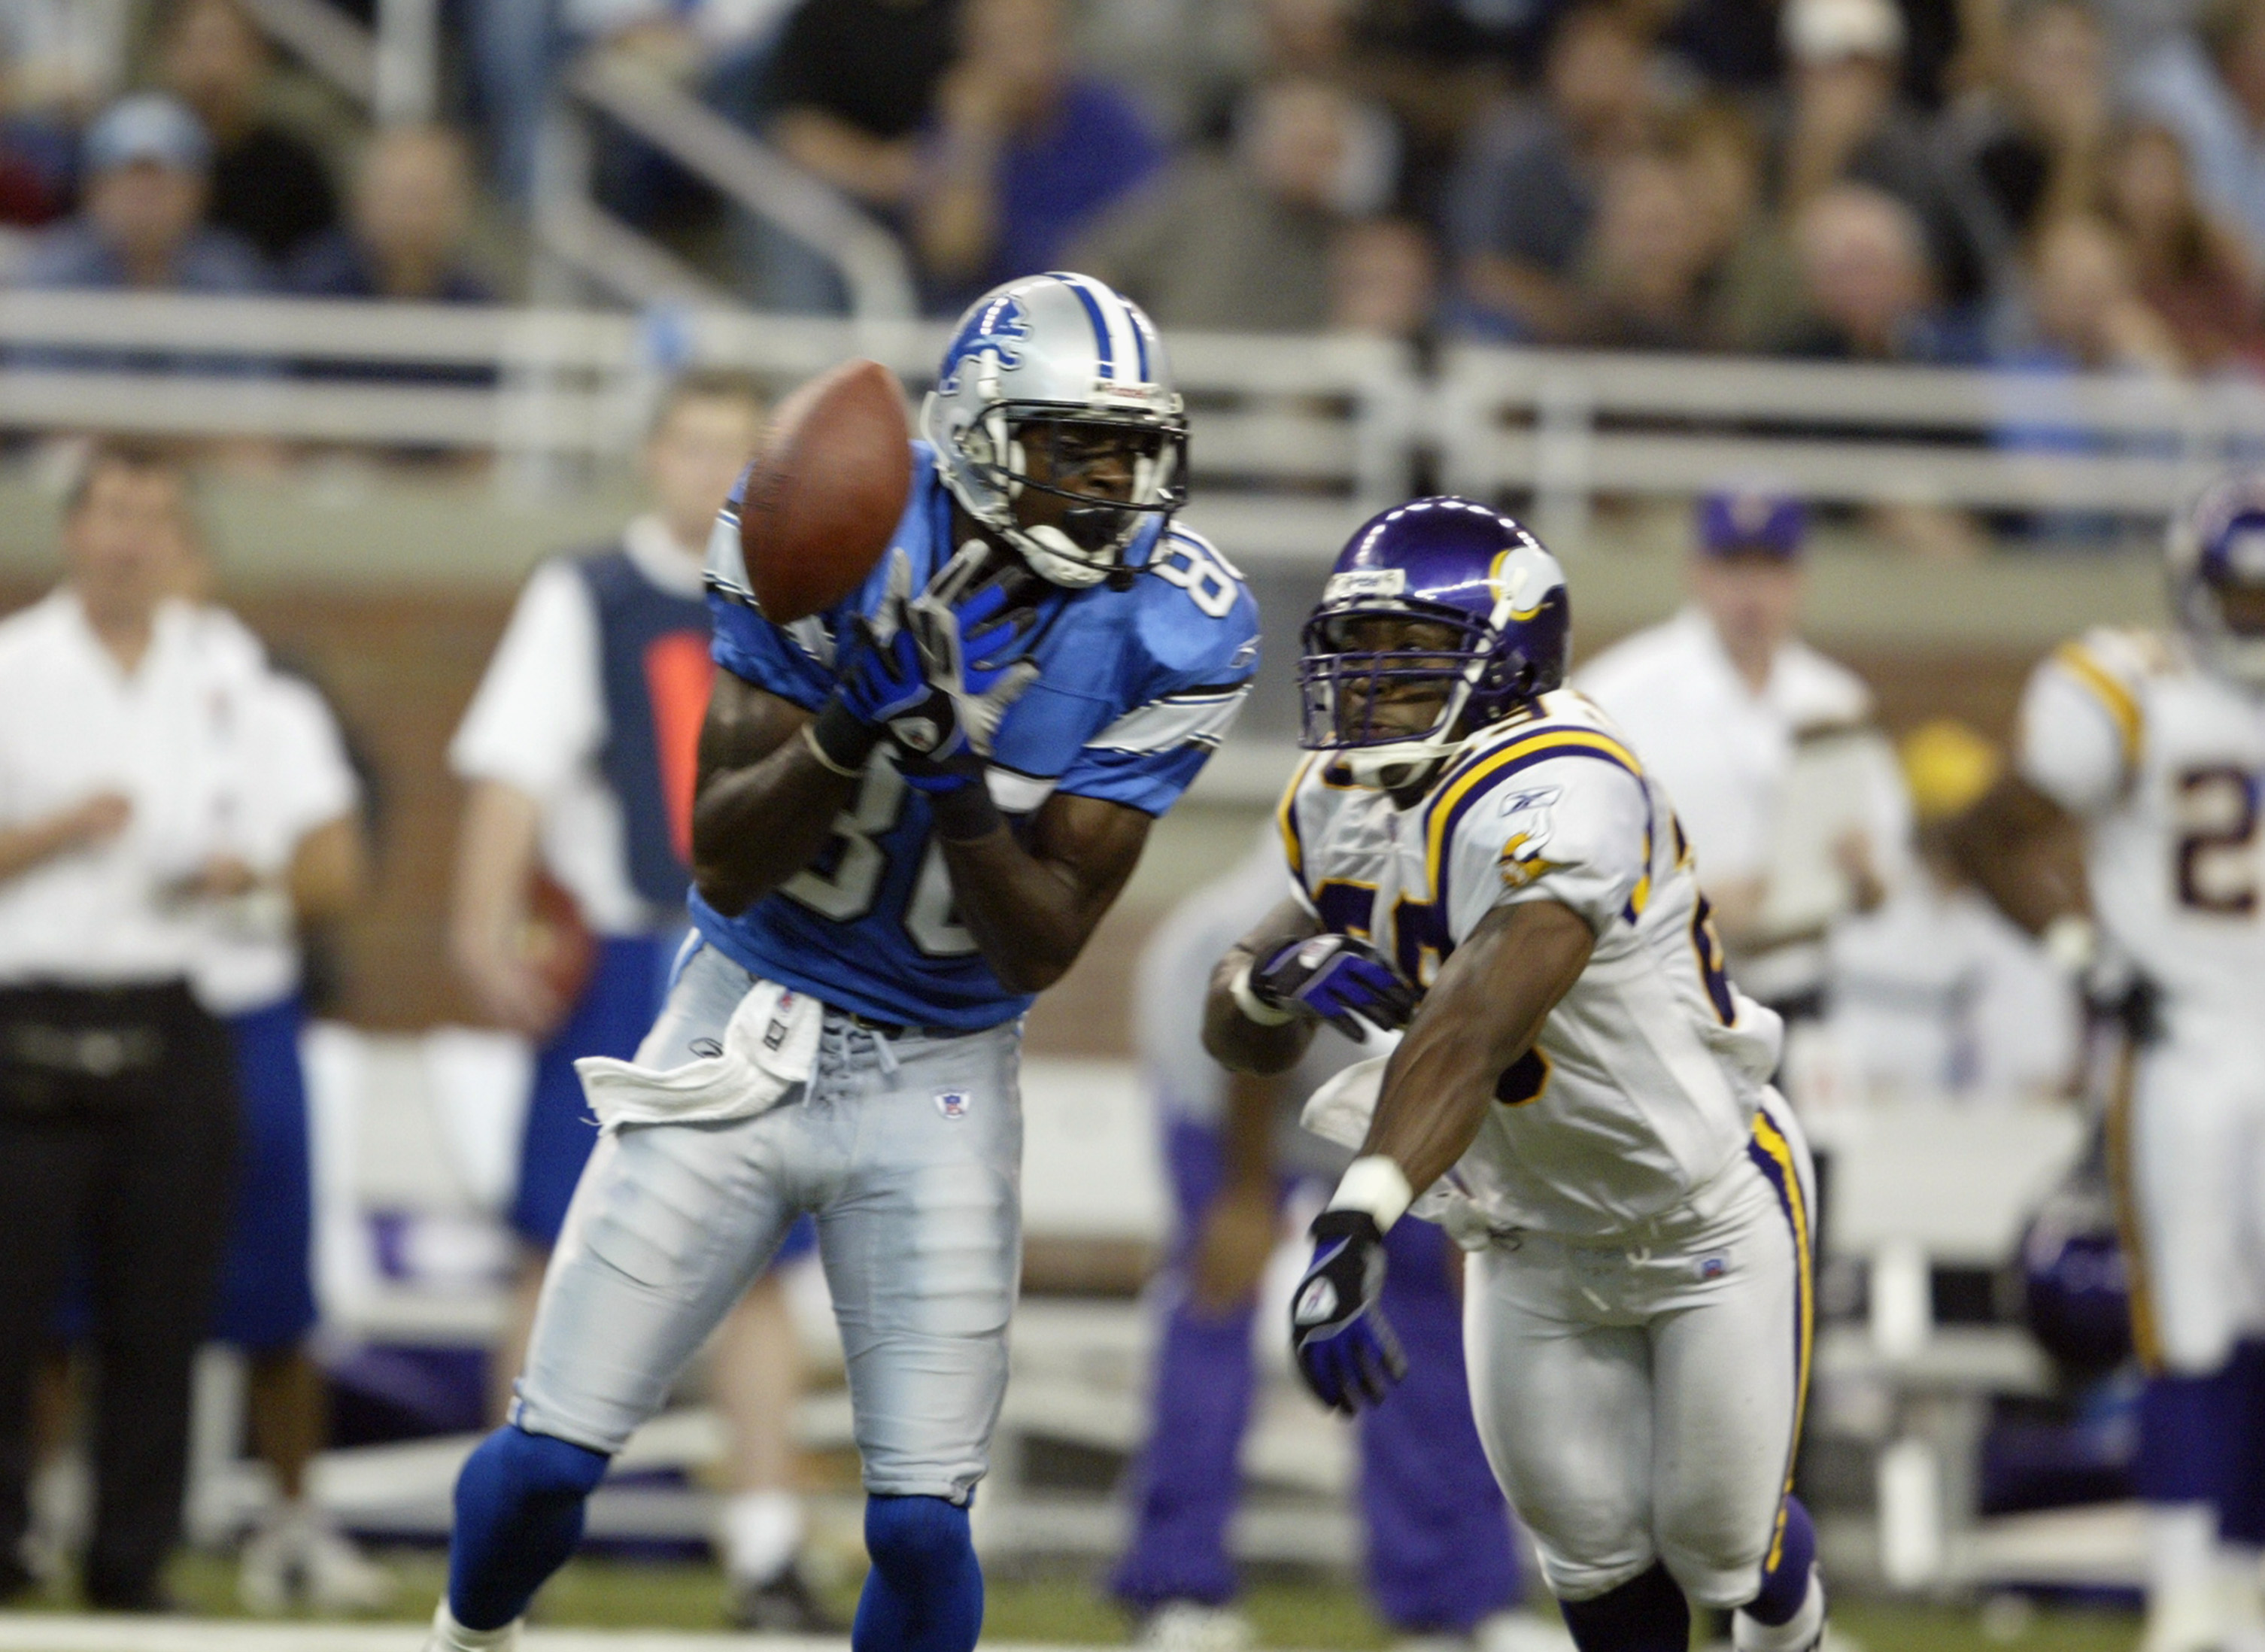 DETROIT - SEPTEMBER 21:  Wide receiver Charles Rogers #80 of the Detroit Lions fails to catch a pass while being defended by linebacker Mike Nattiel #59 of the Minnesota Vikings at Ford Field on September 21, 2003 in Detroit, Michigan. The Vikings defeate